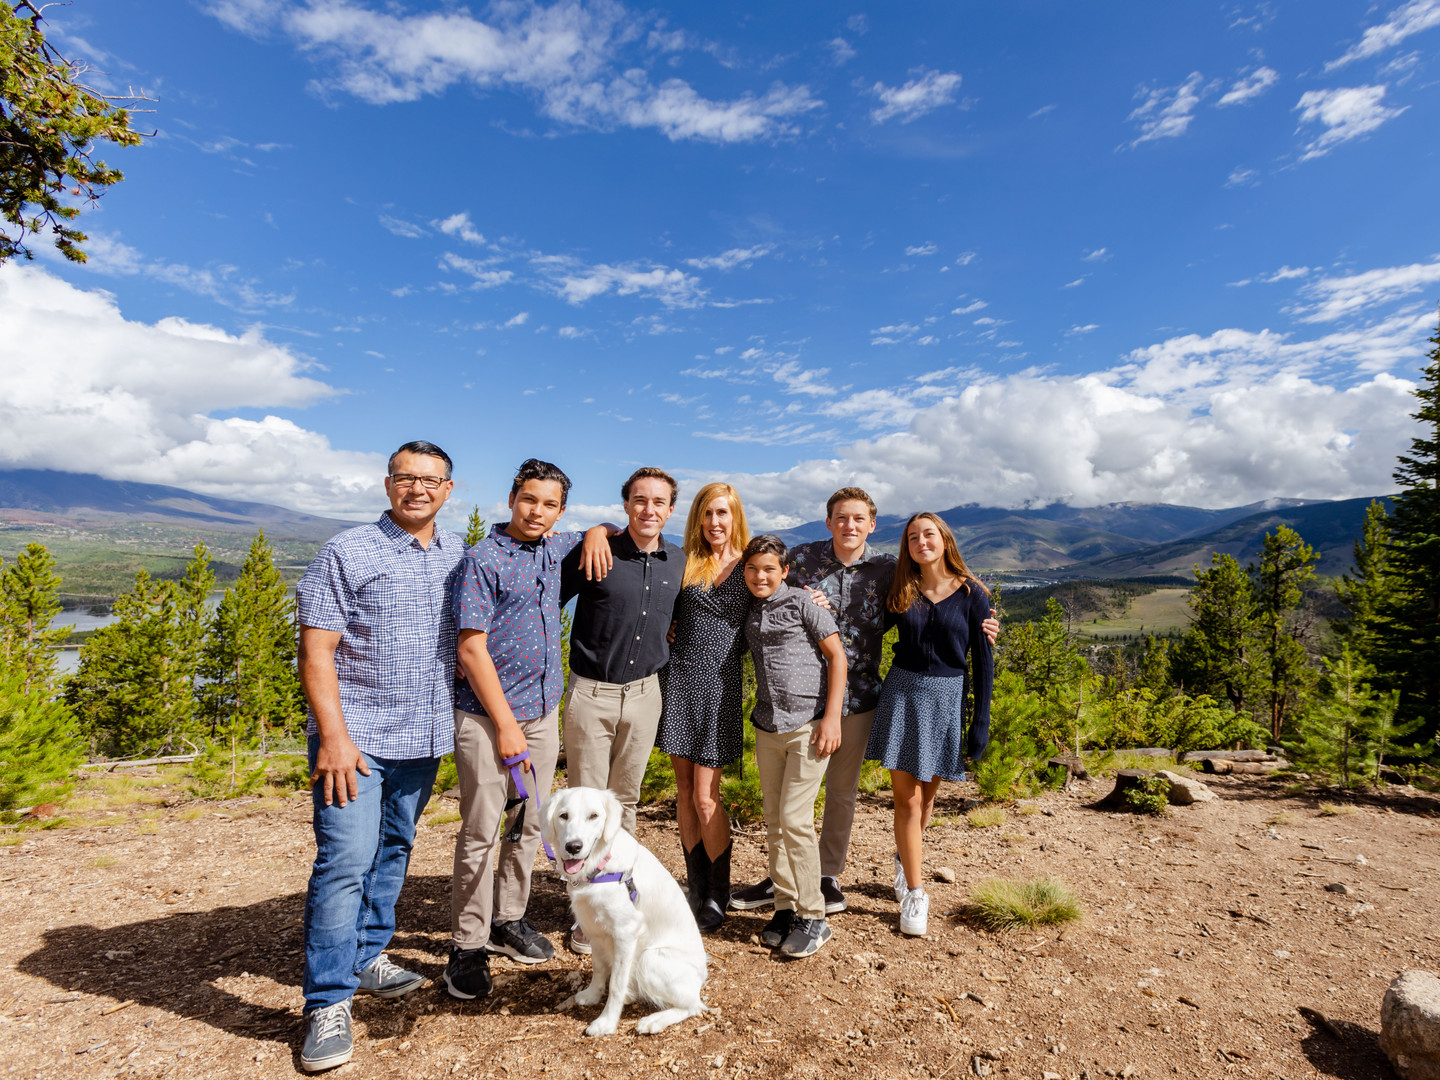 Castillo Family - LAB Photography Denver